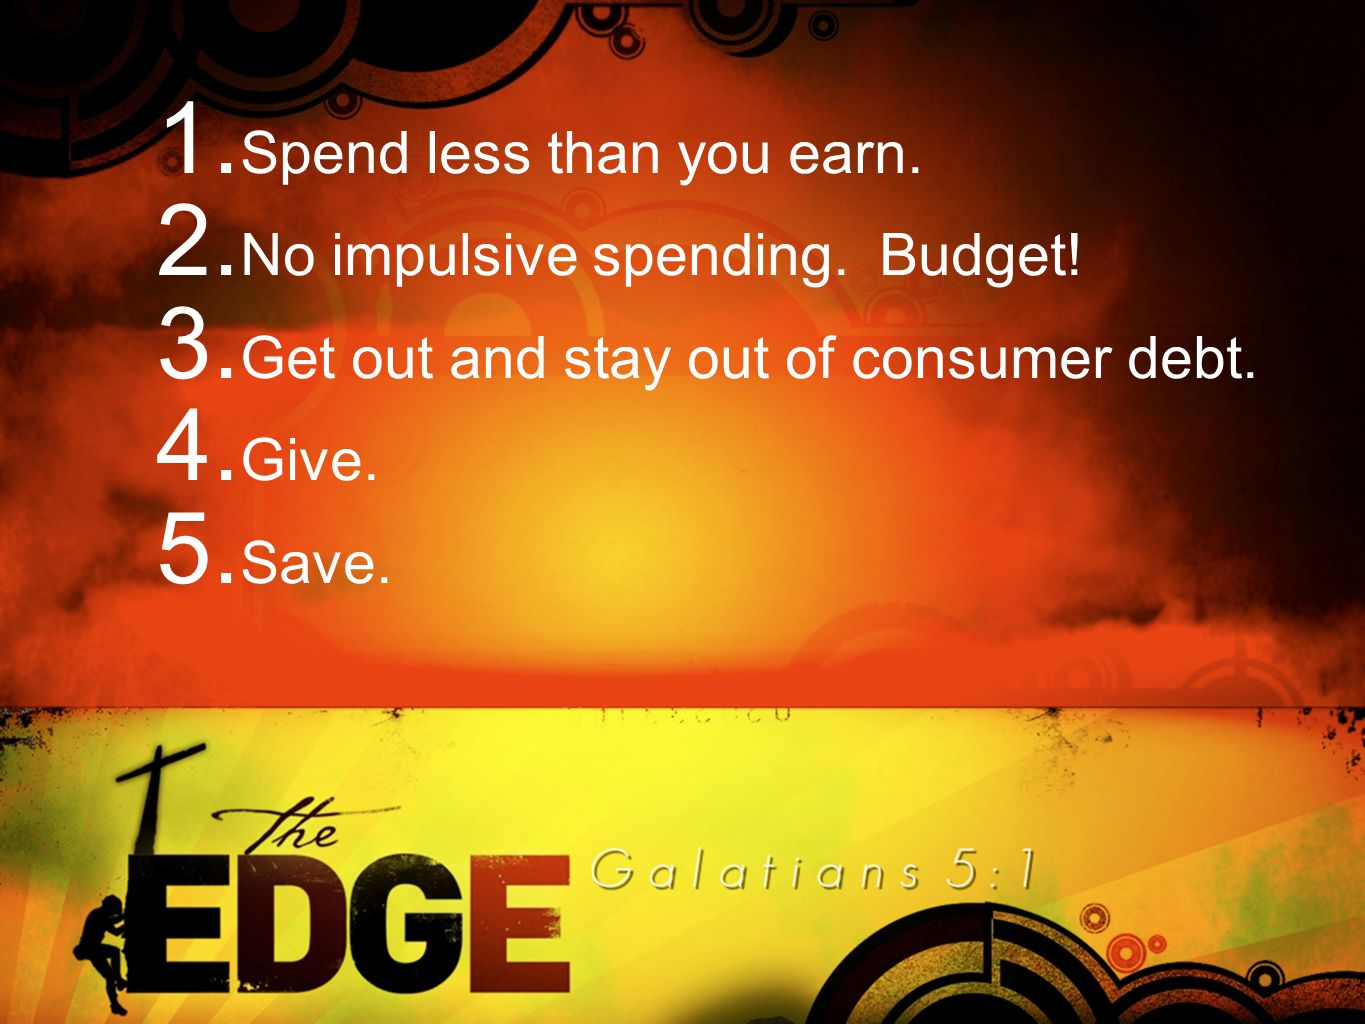 1. Spend less than you earn. 2. No impulsive spending.